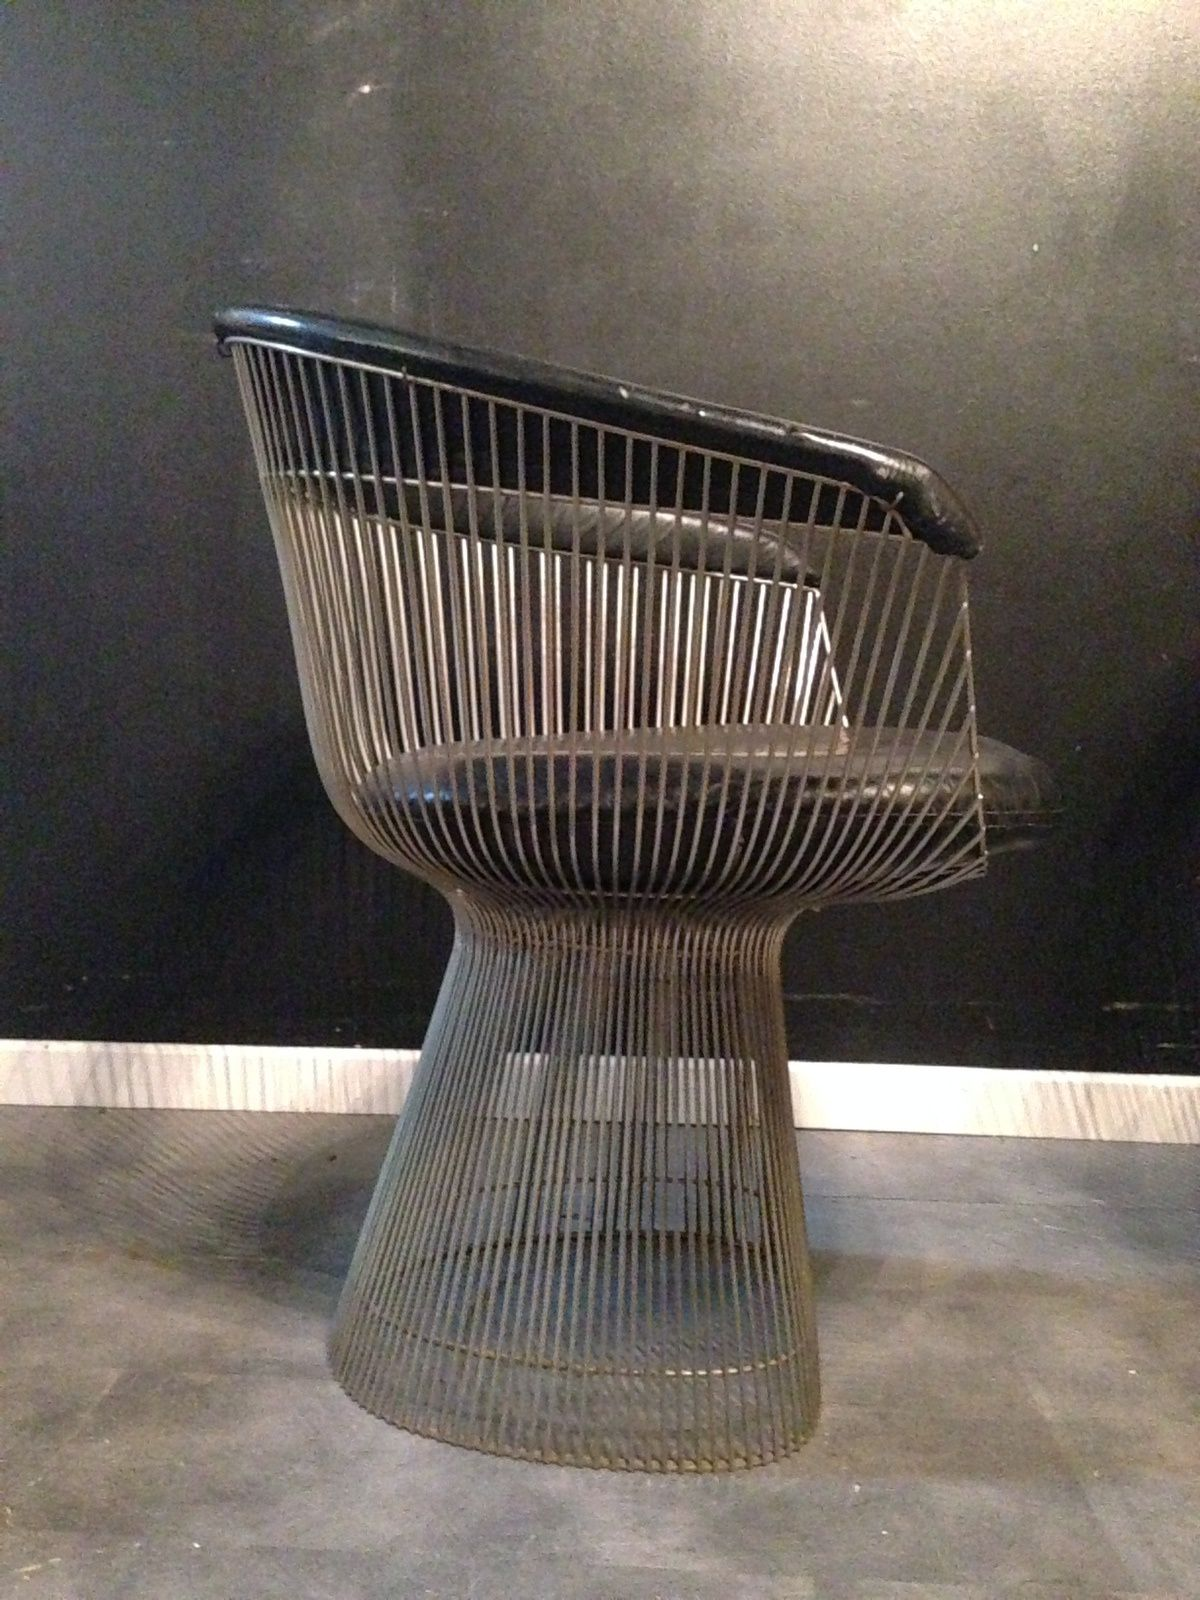 Fauteuils vintage du Designer Warren Platner édition Knoll international provenance USA assise et dossier cuir noir structure métal  nickelé